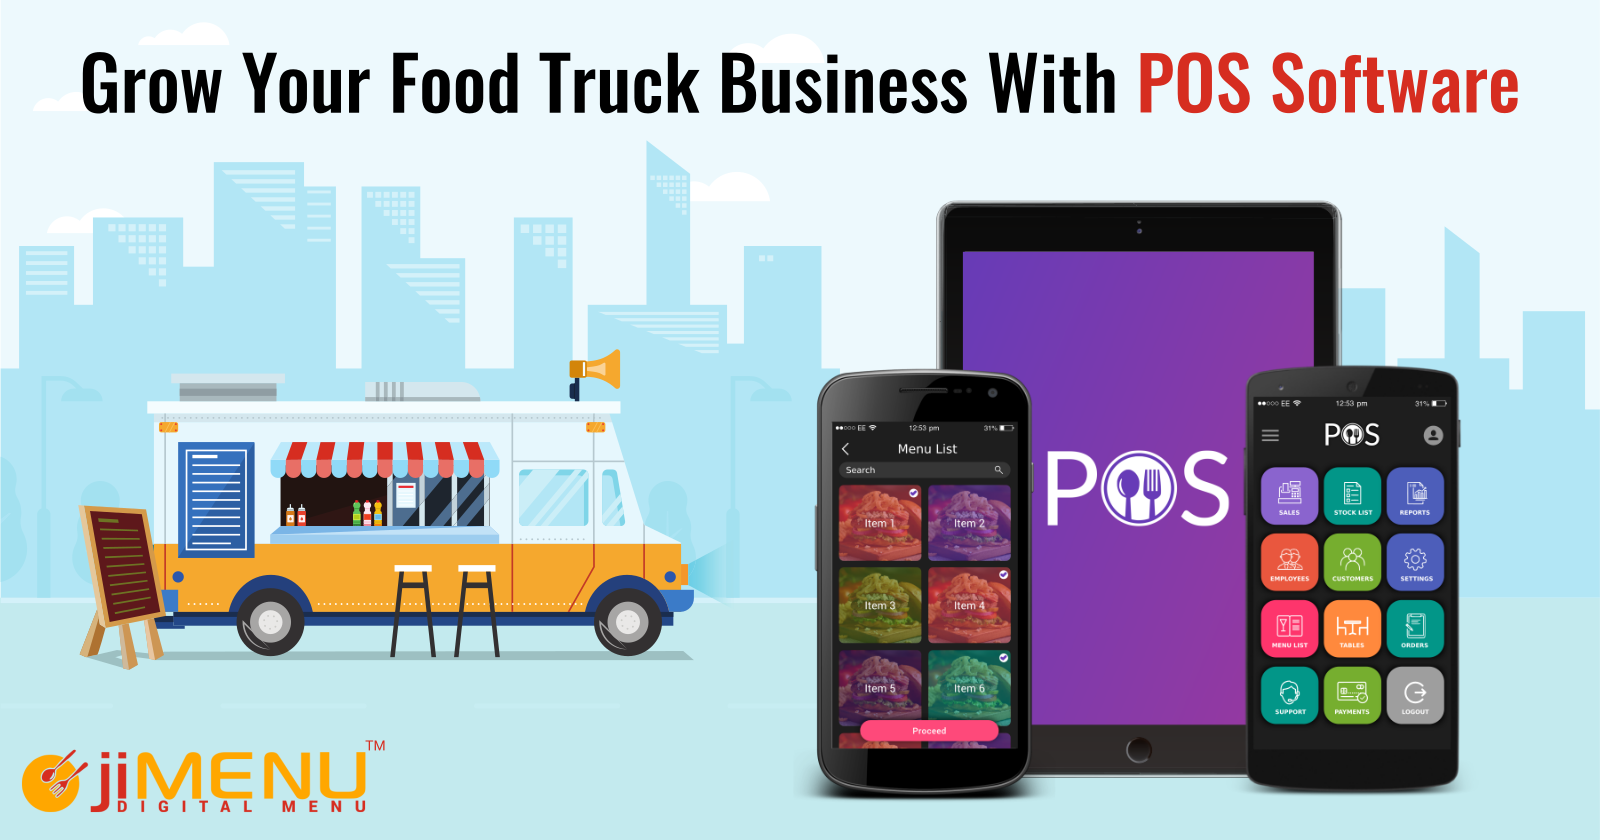 Grow Your Food Truck Business With POS Software